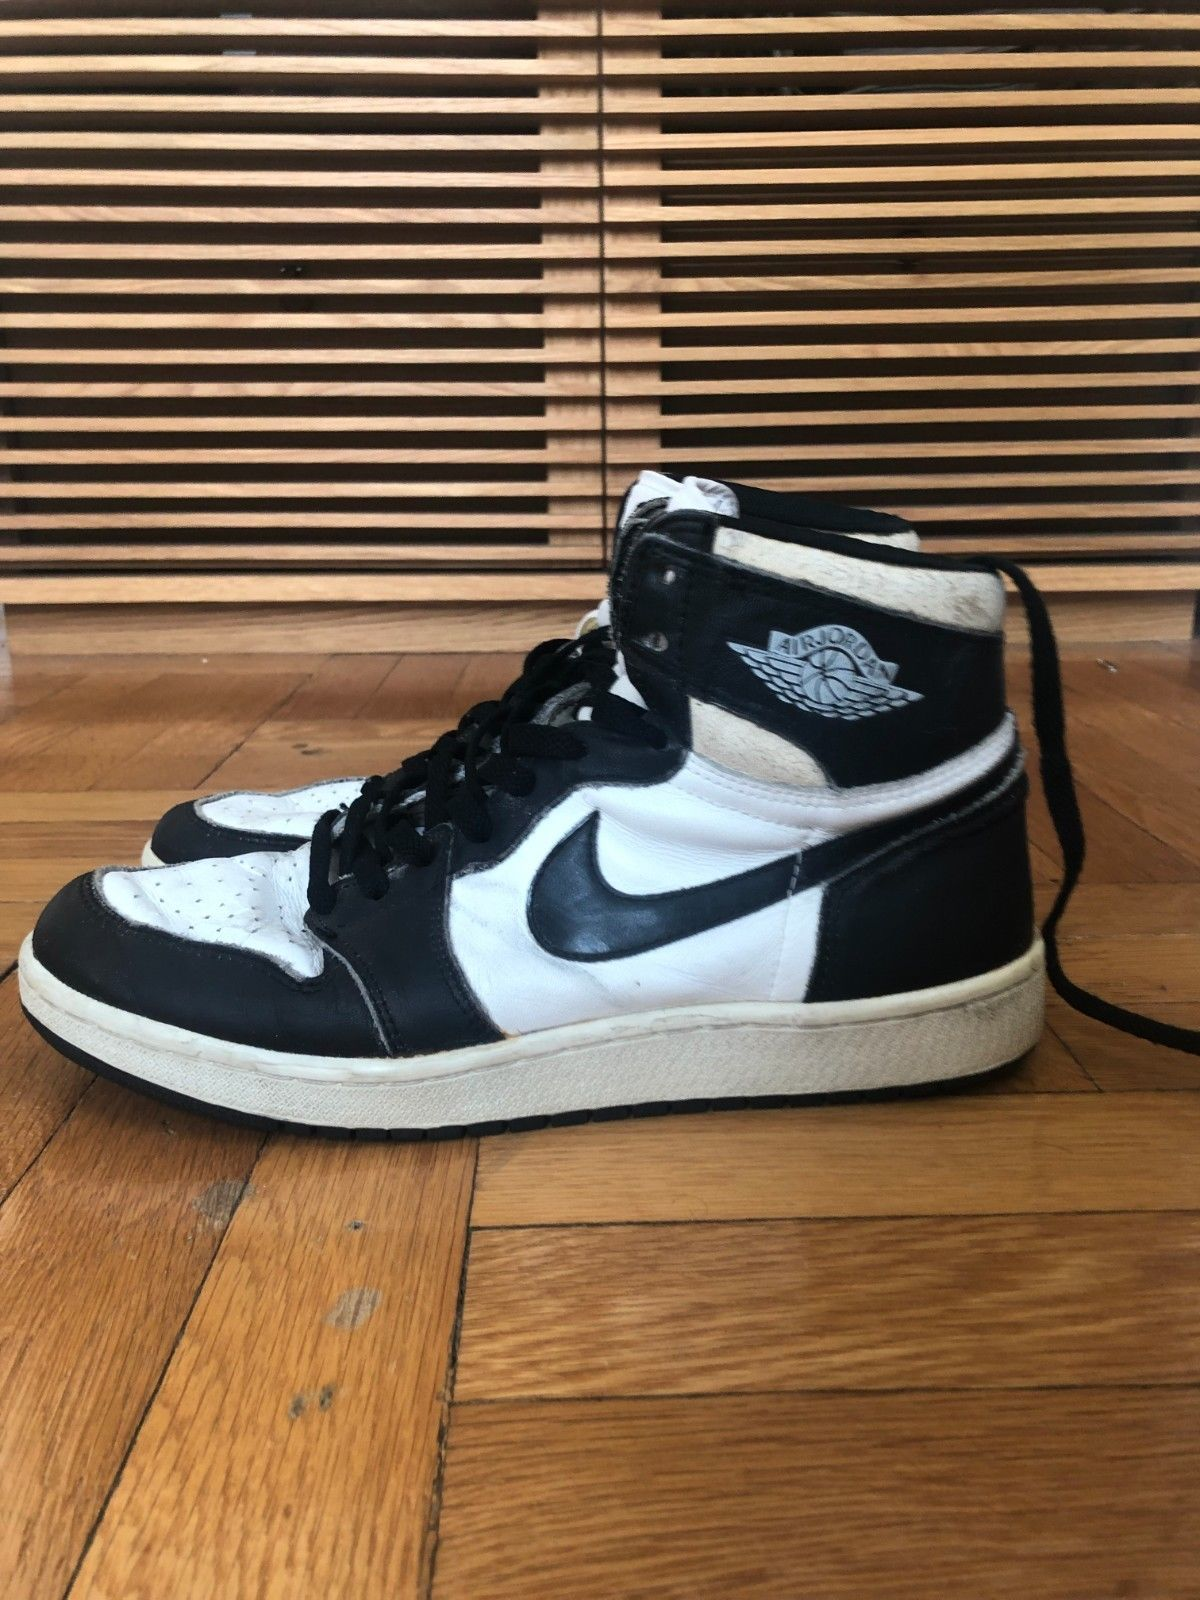 41a54c6706e Details about 1985 Original Nike Air Jordan I 1 Red Black White ...